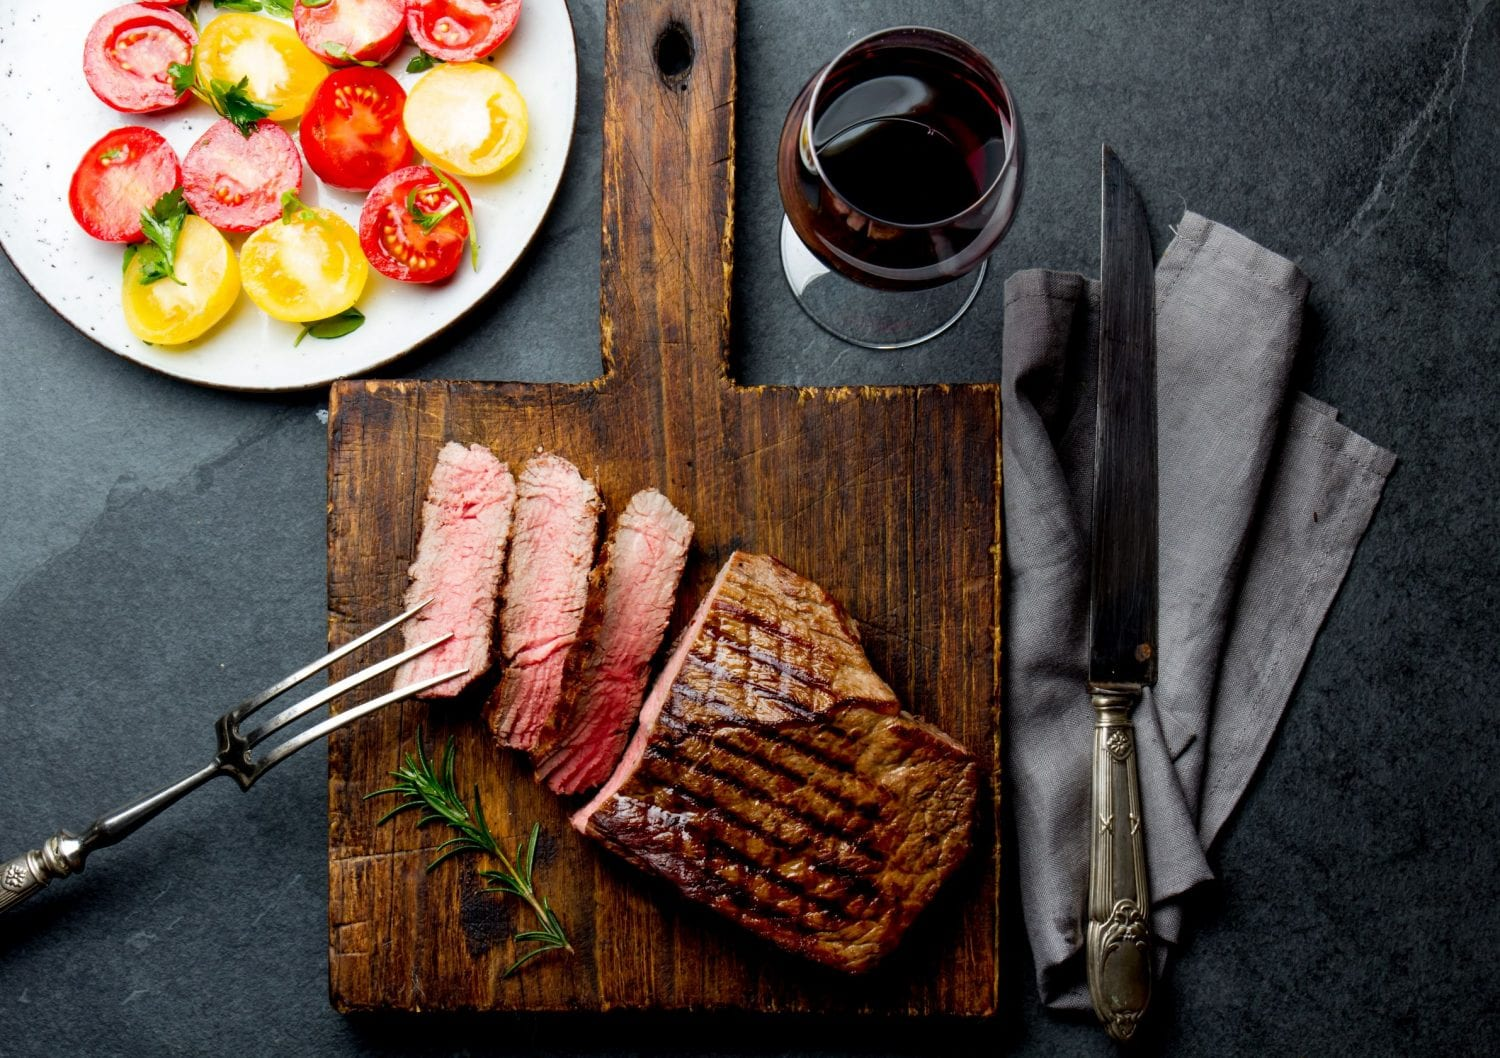 Weed steak with slices cut out of it on a cutting board with a knife and other cooking utensils beside it. There is a glass of wine and a plate of peppers in the background